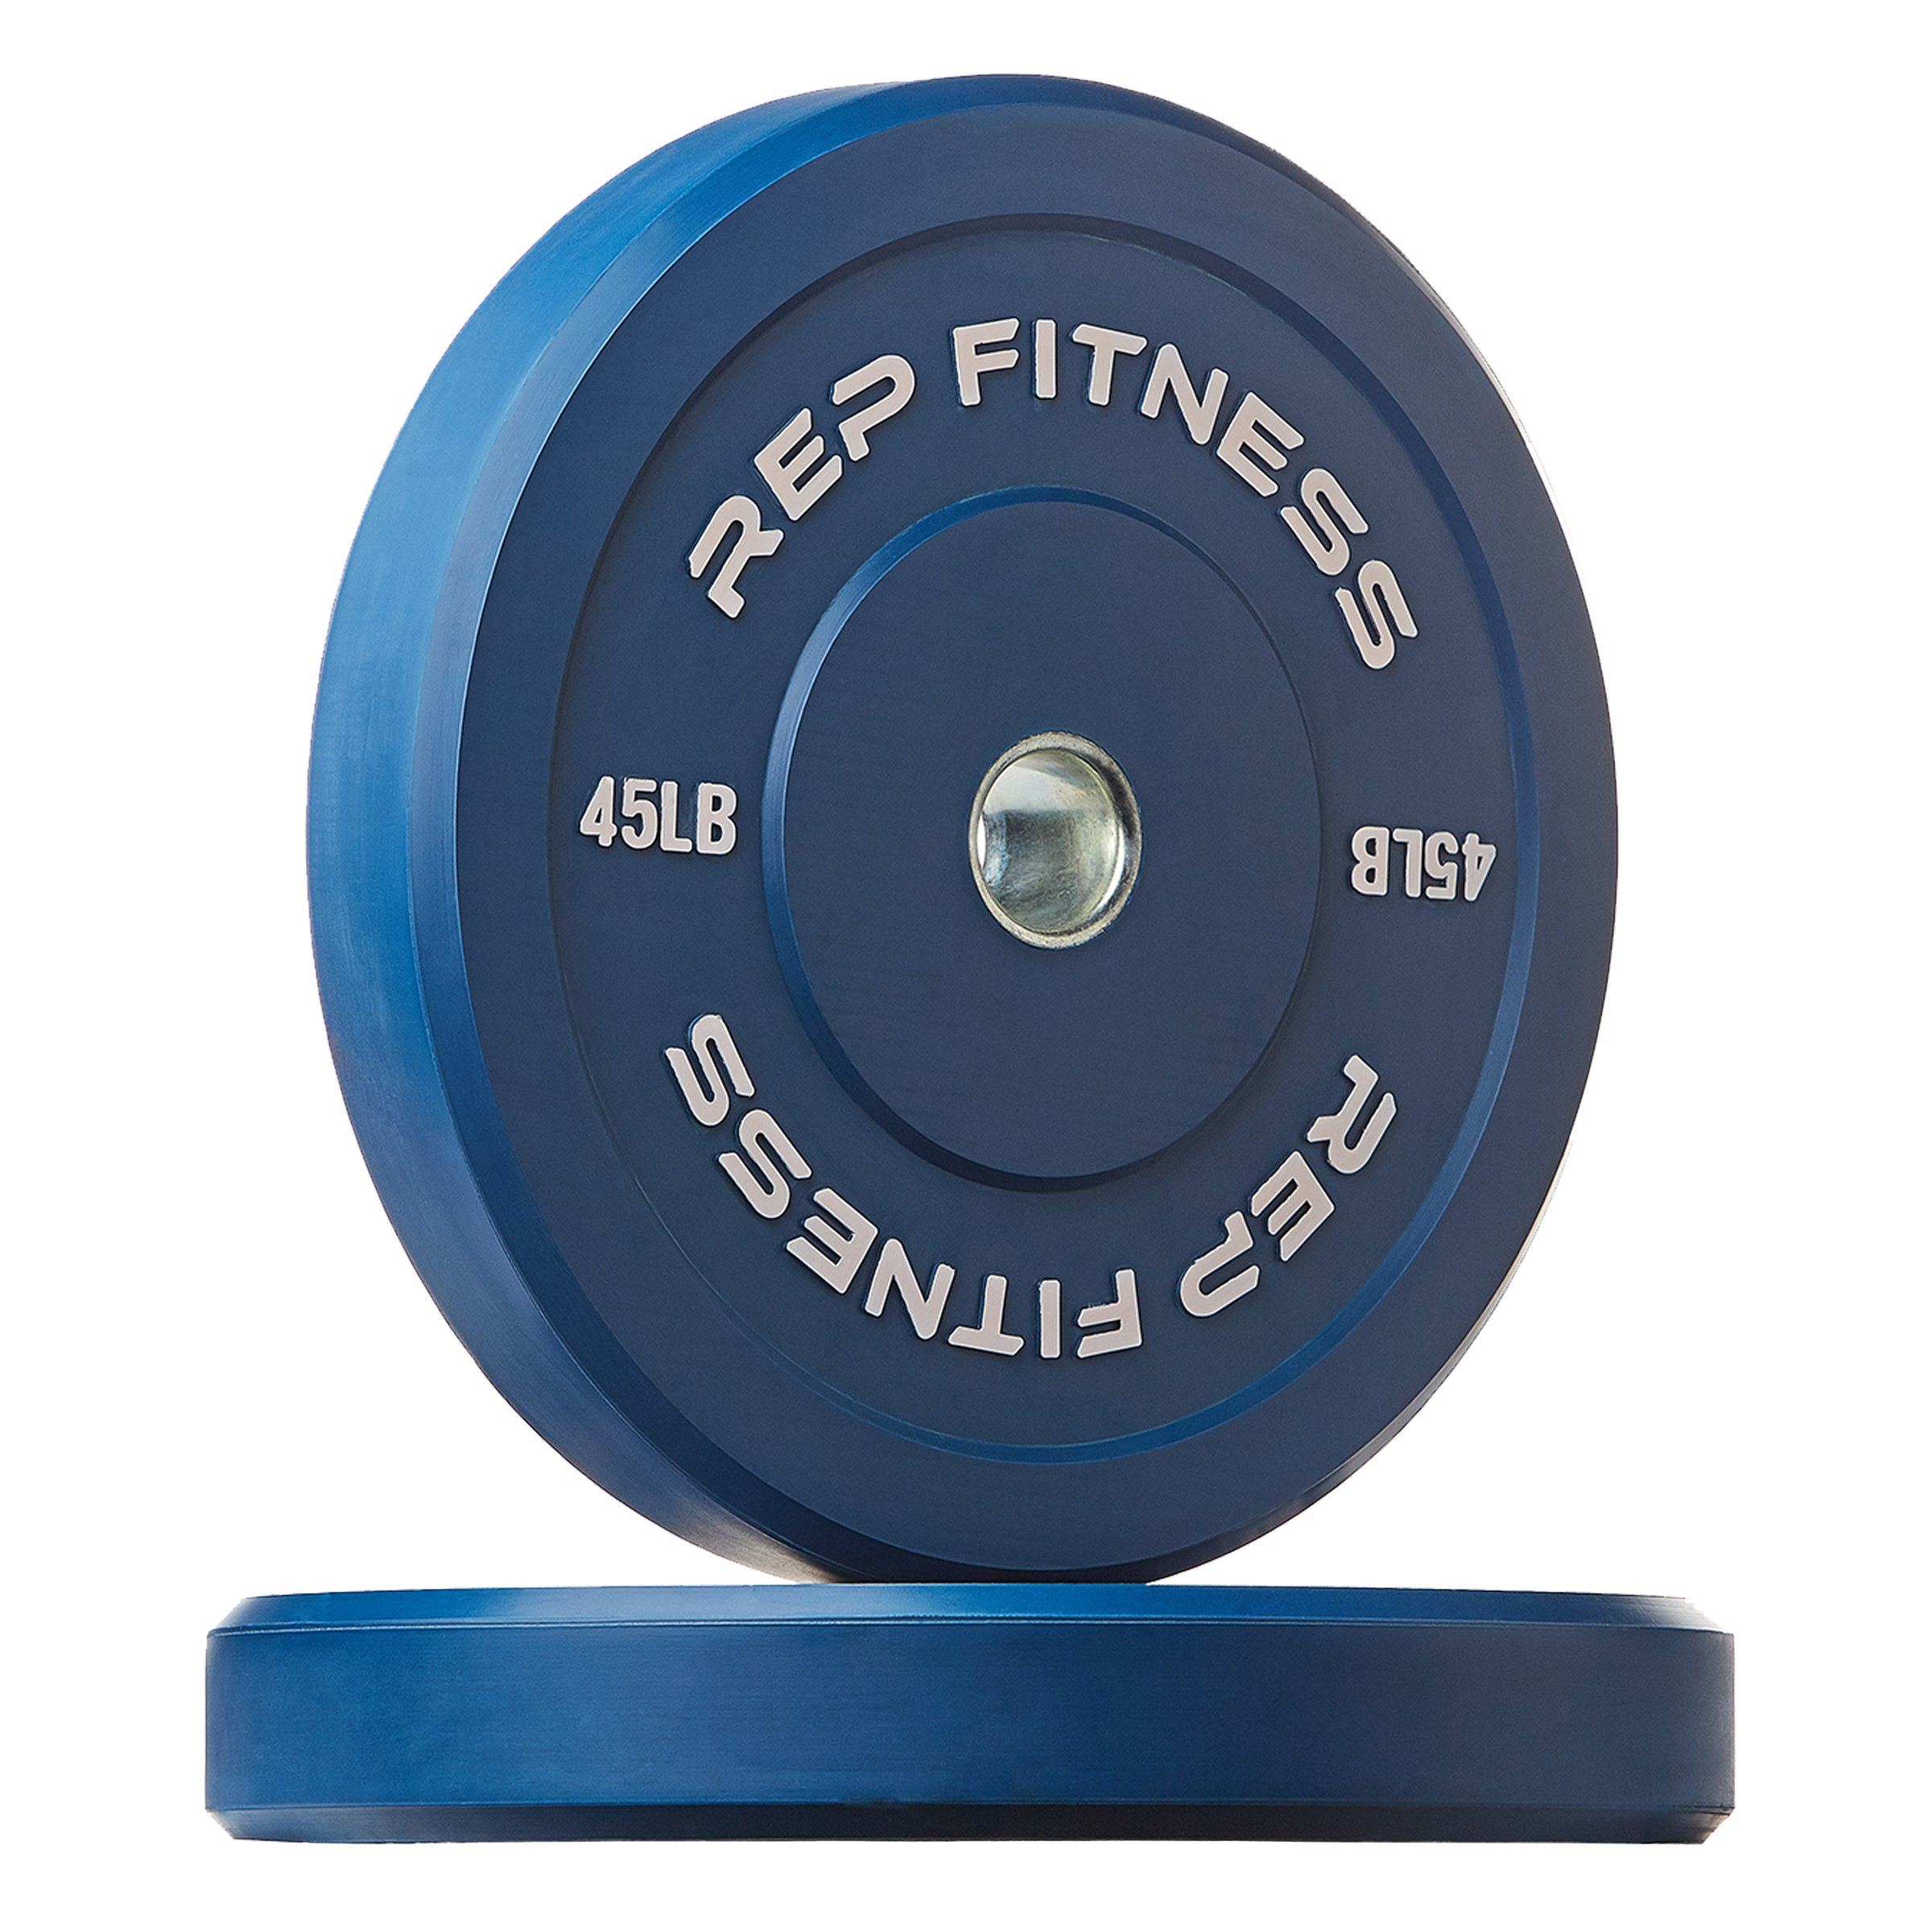 Rep Color Bumper Plates for Strength and Conditioning Workouts and Weightlifting, 45 lb Pair